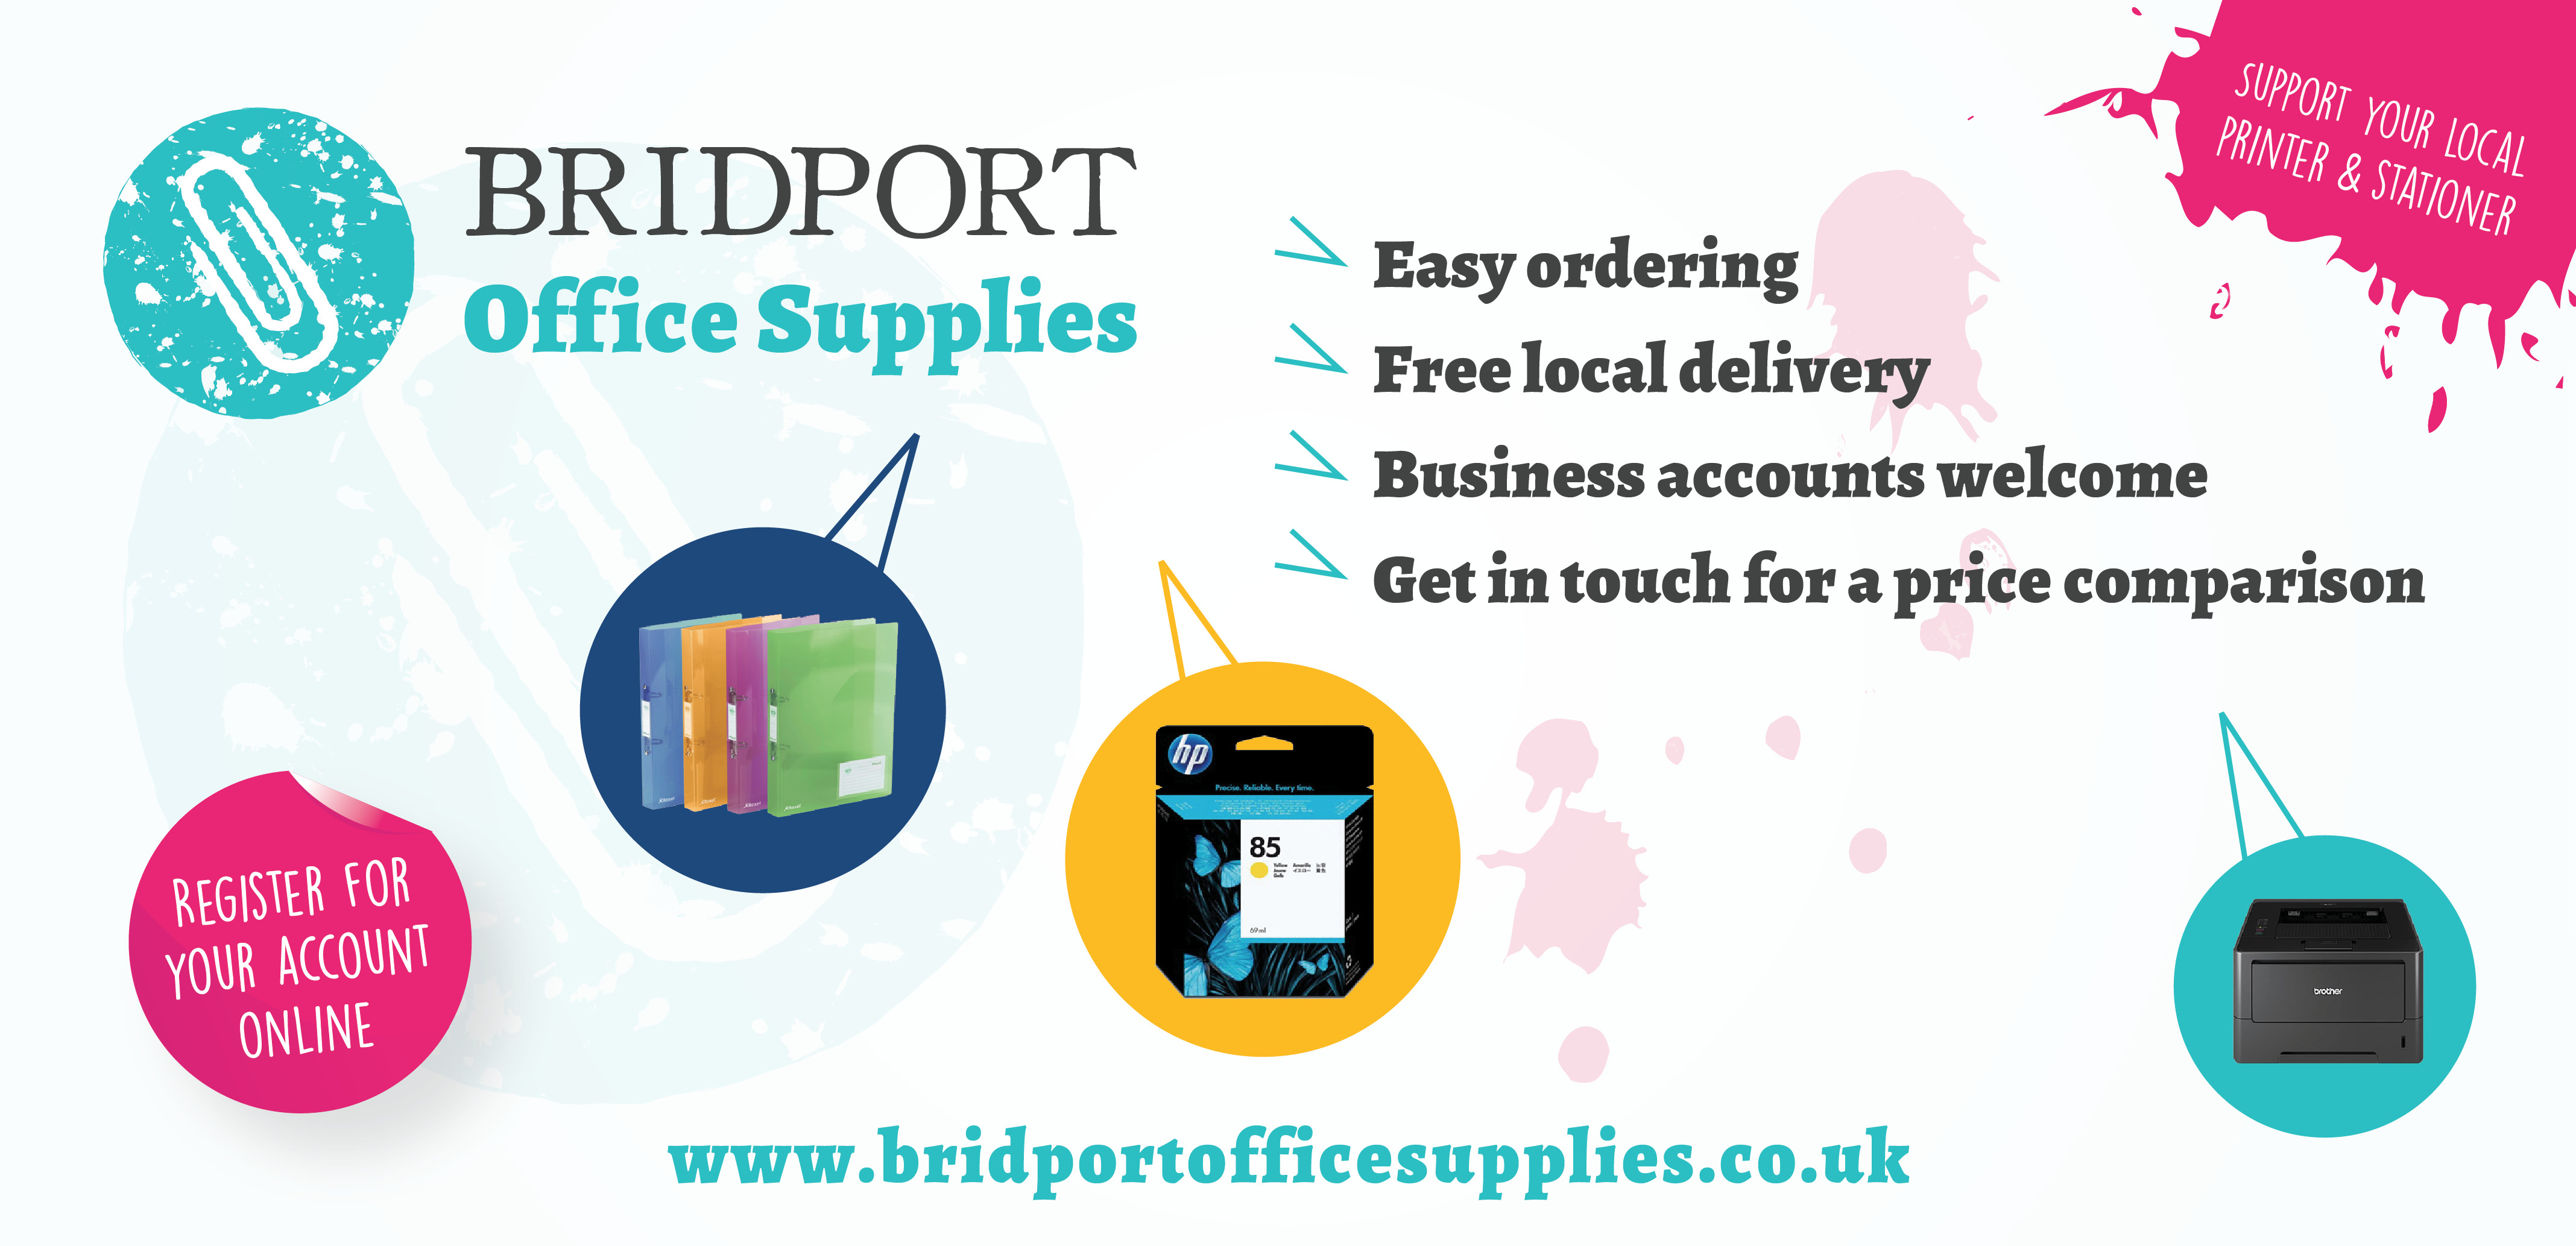 Cheap business cards free next day delivery solopress uk oukasfo tagscheap business cards free next day delivery solopress ukbusiness cards printing with next day deliverybusiness cards 495 banana print 24hr delivery reheart Choice Image